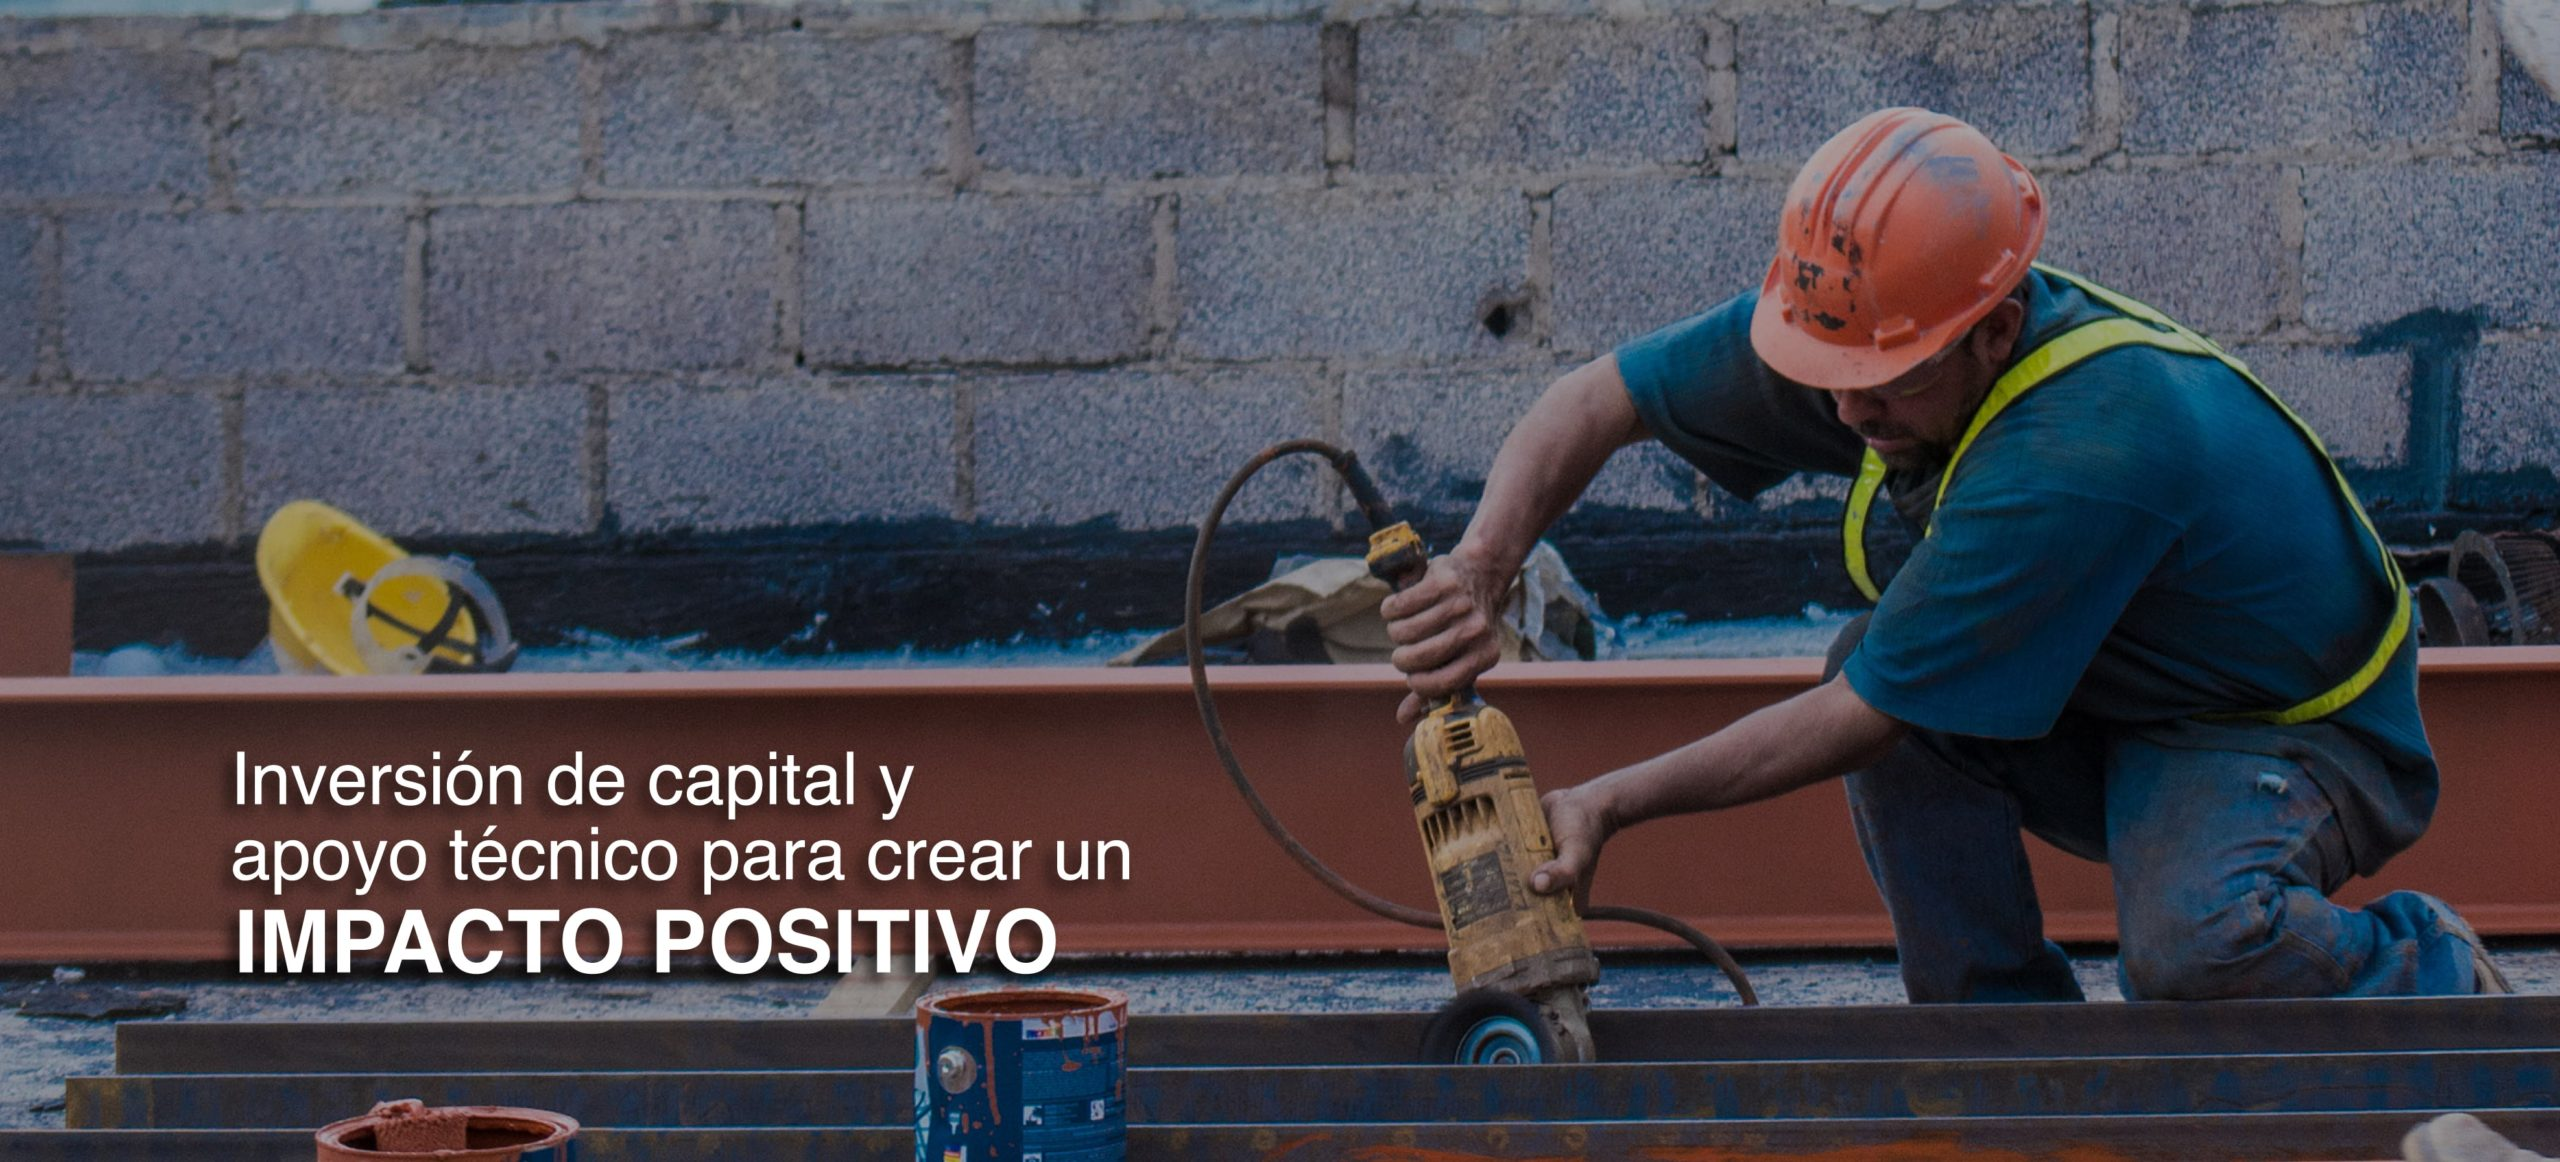 Social impact construction worker wearing safety equipment building affordable housing in Latin America